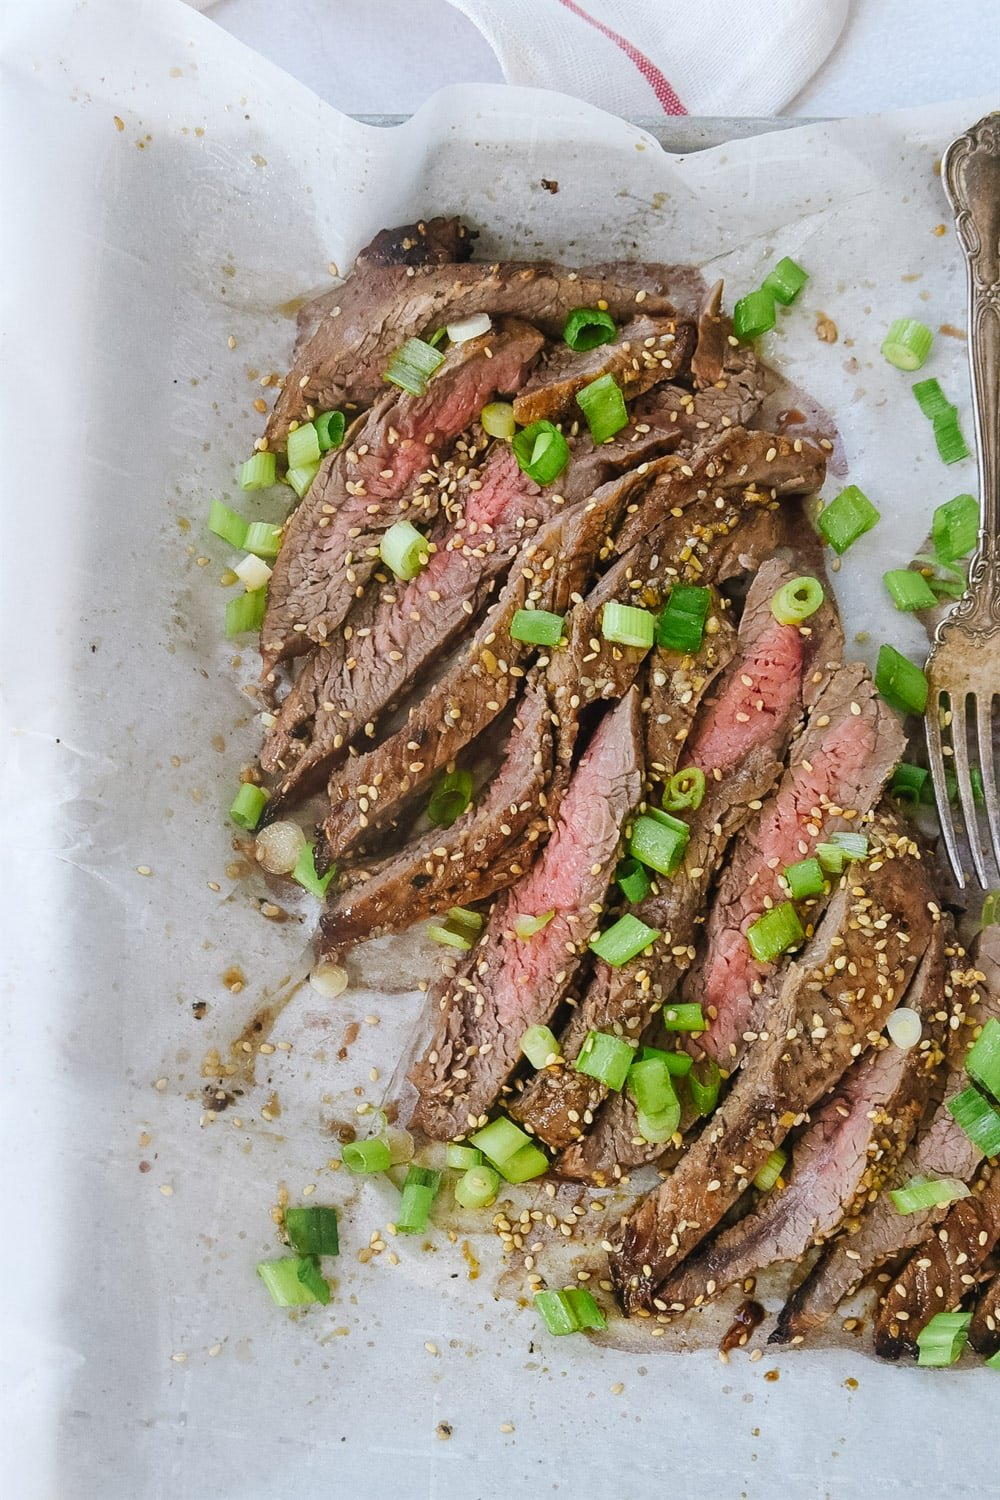 Flank steak on parchment paper